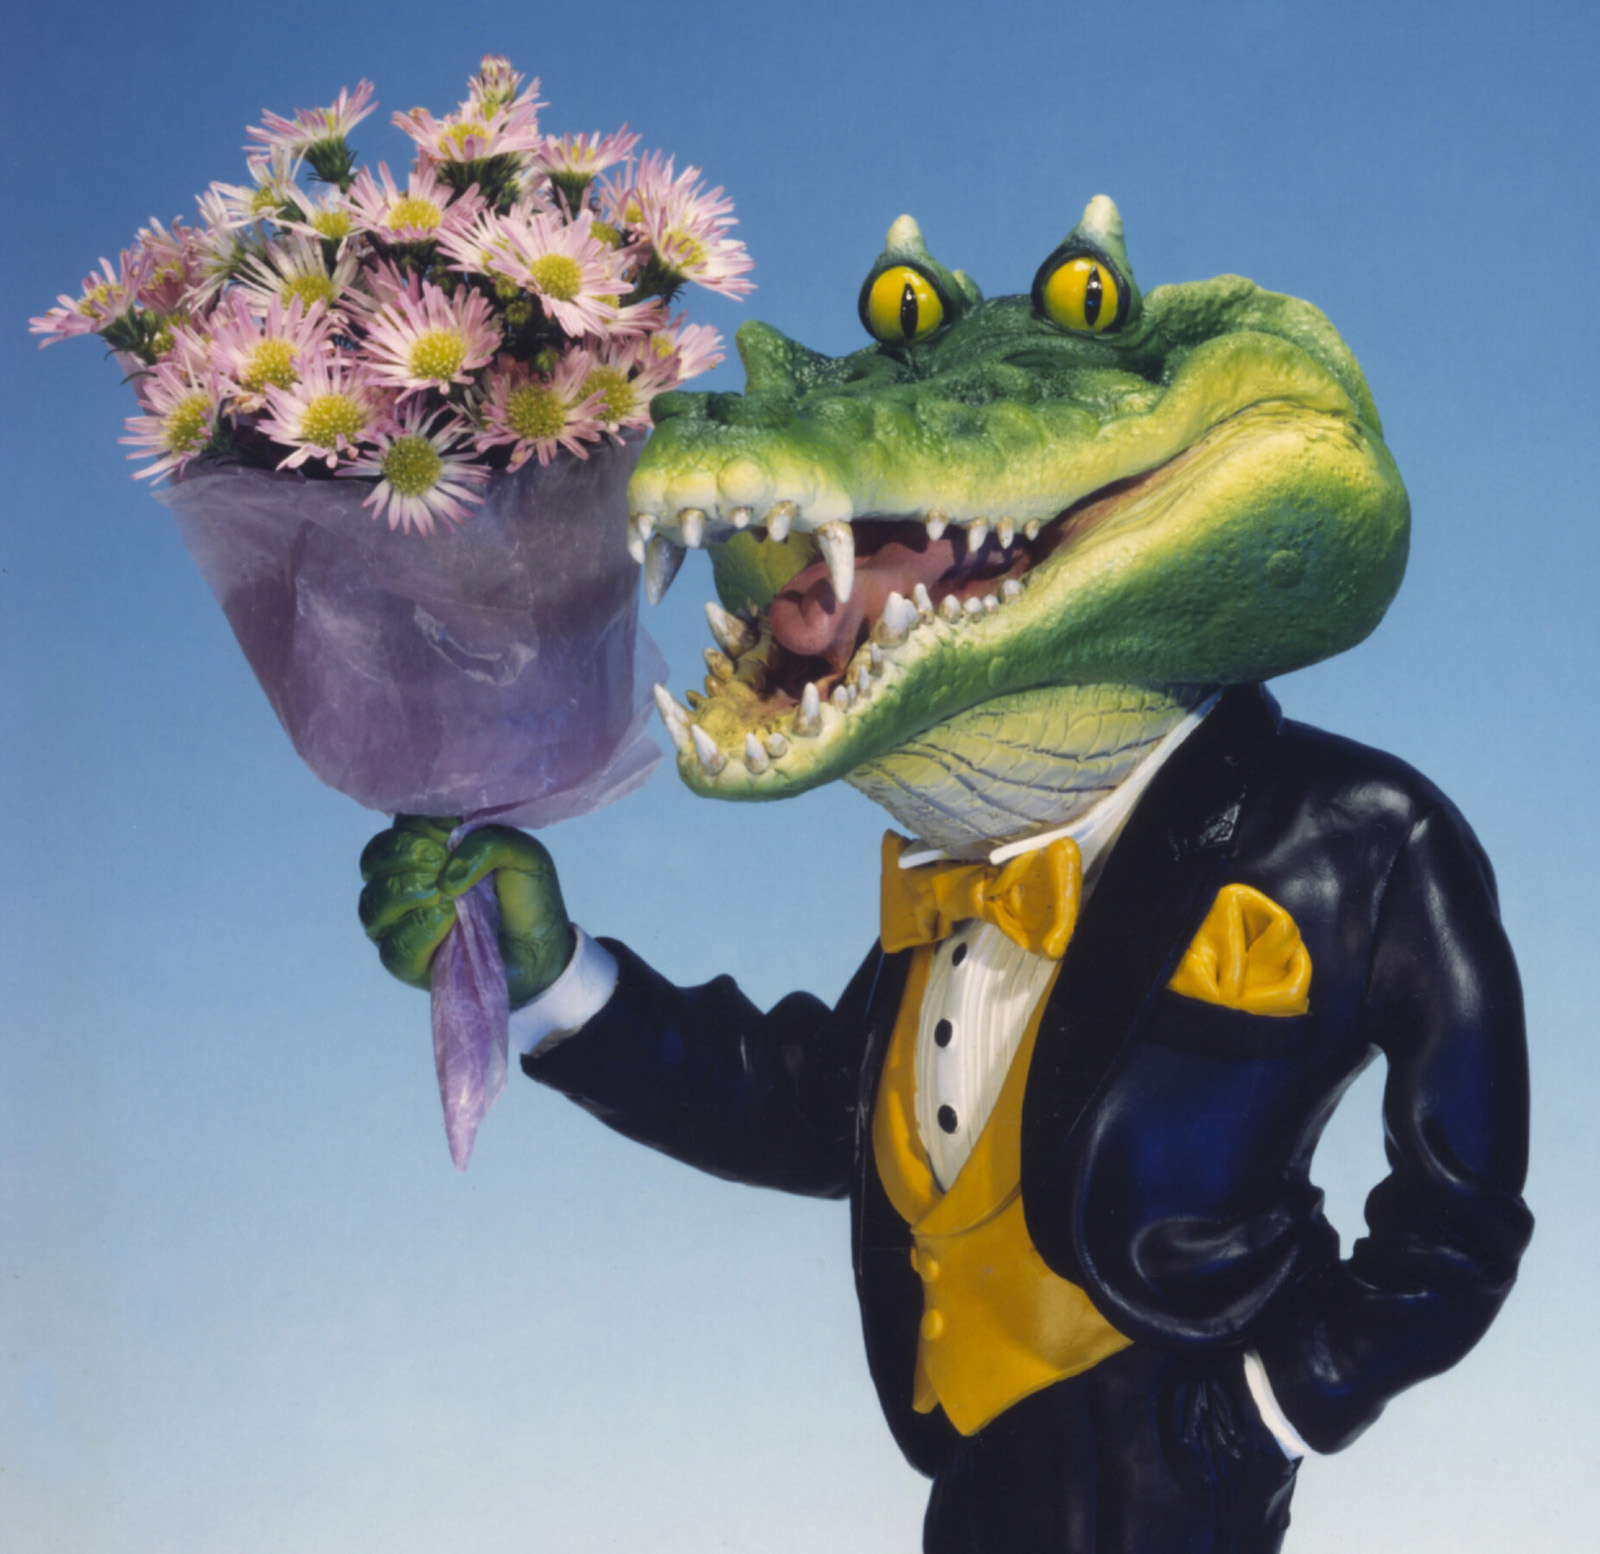 Gingiss Menswear Prom Gator